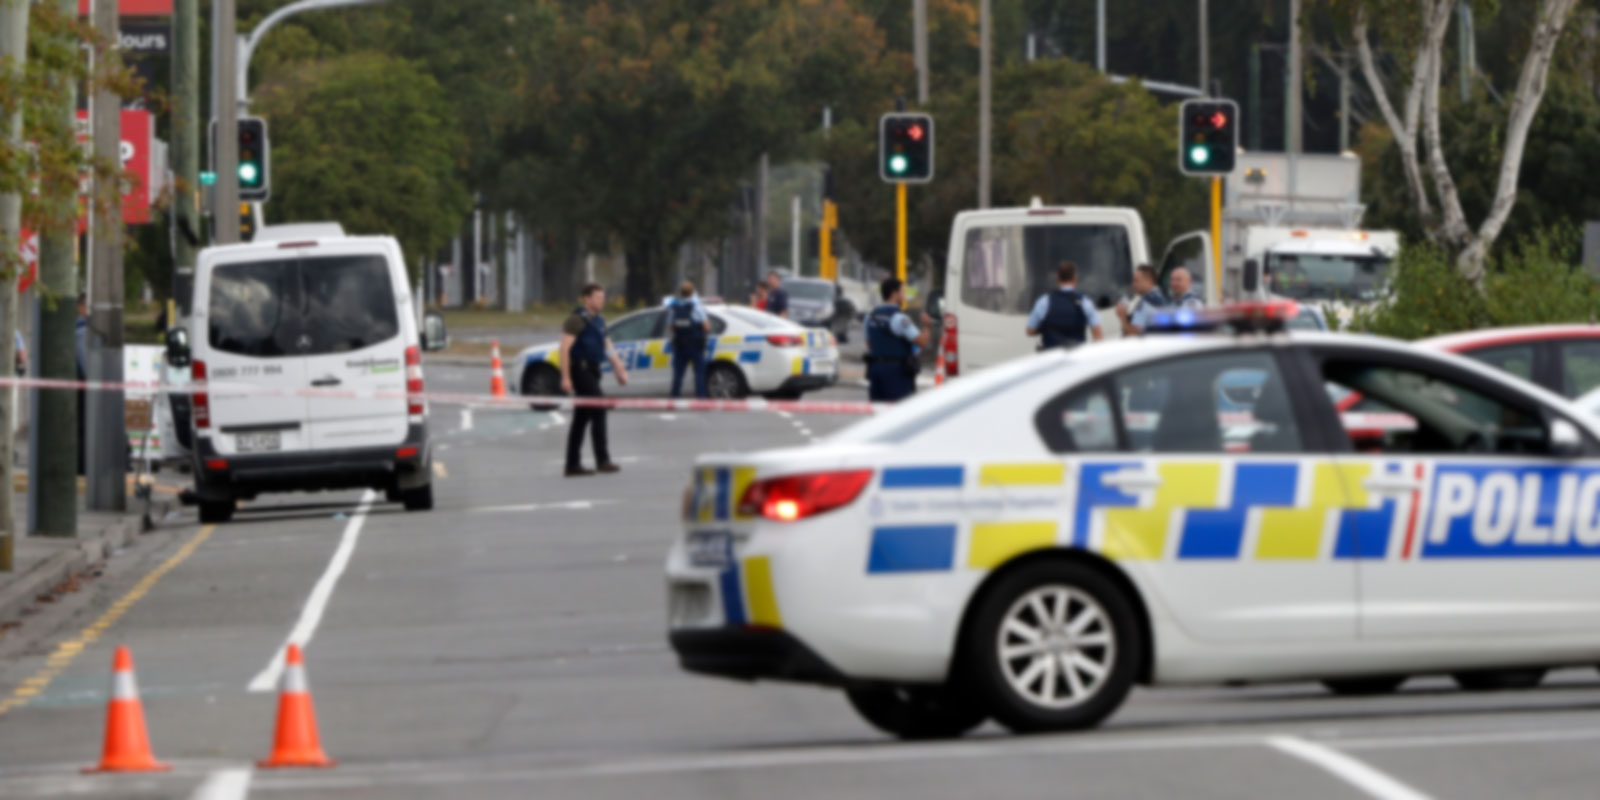 Terrorist Attack Christchurch: Press Statement On Christchurch Massacre / Terrorist